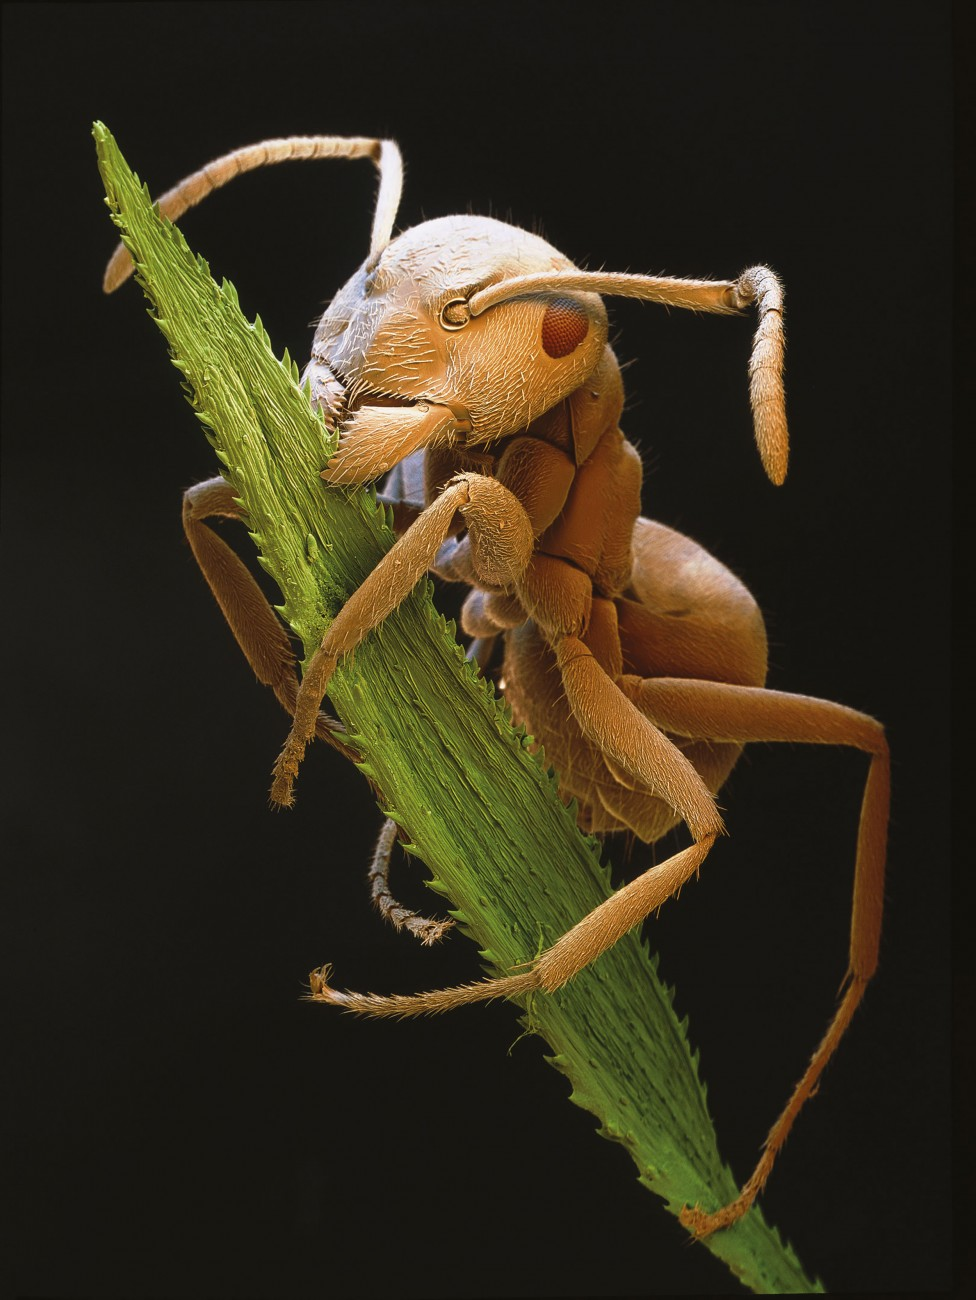 "One of the most mind-addling manipulators is the lancet fluke Dicrocoelium lanceolatum, which forces its ant host to climb to the top of a grass blade and wait patiently to be eaten by a grazing sheep or cow, the fluke's final host. Although ants ingest several hundred cercariae in one go, only one of these lodges in the ant's ganglion to become an active brainwasher, sending chemical signals that will send it to certain death and its brethren to a new home. This ""brainworm"" loses its ability to sexually reproduce, effectively sacrificing itself for the greater good of its cercarial siblings."